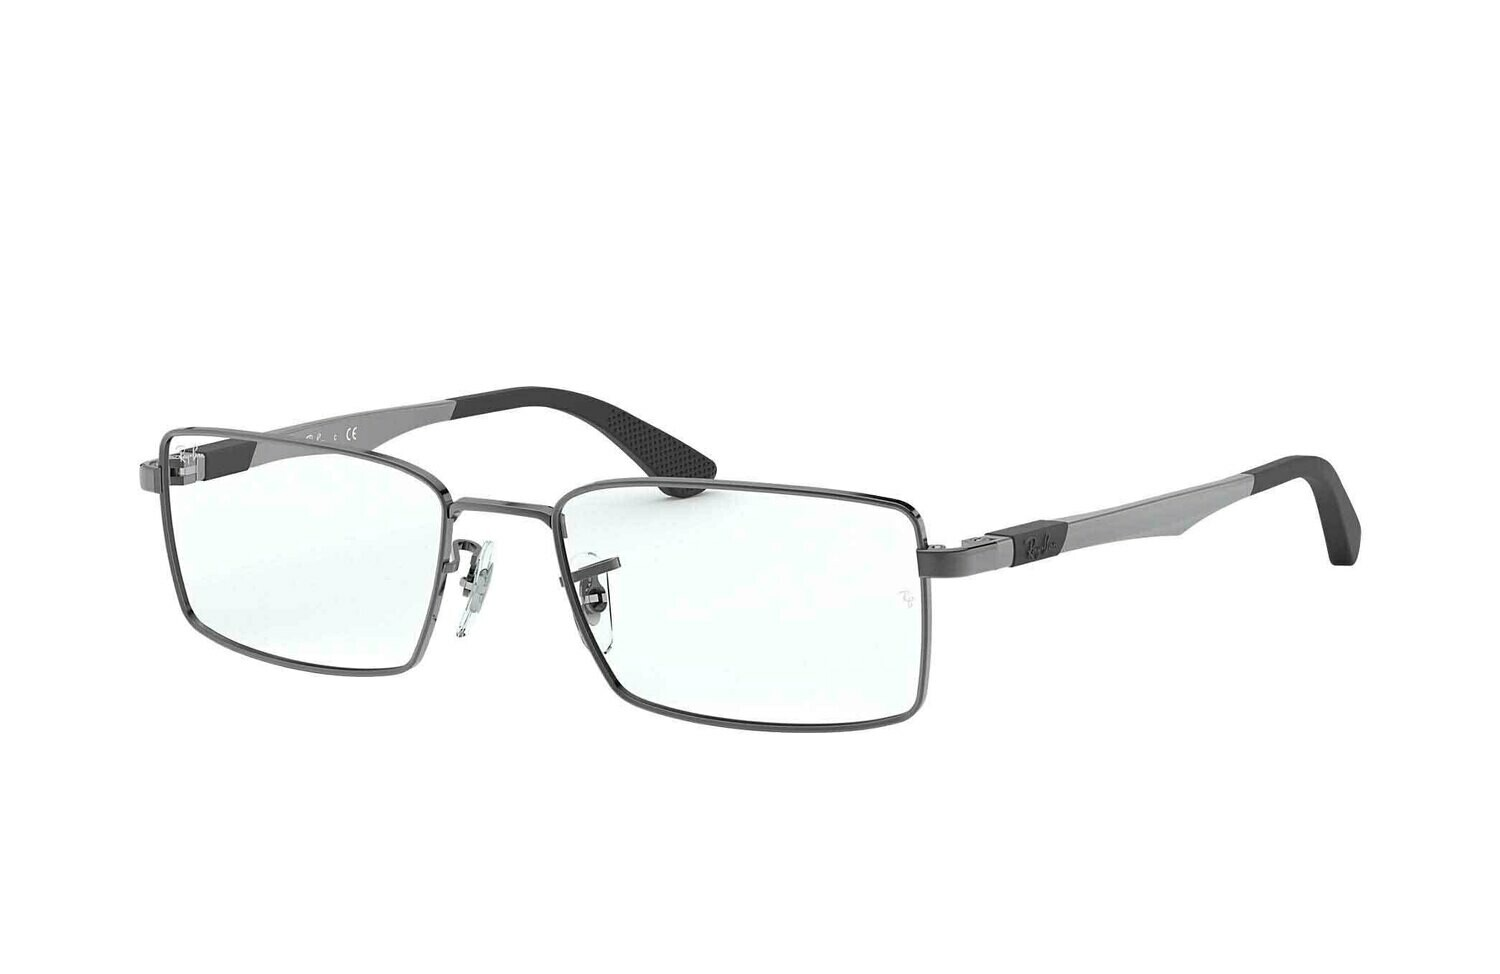 Ray Ban RX6275 Glasses (2)